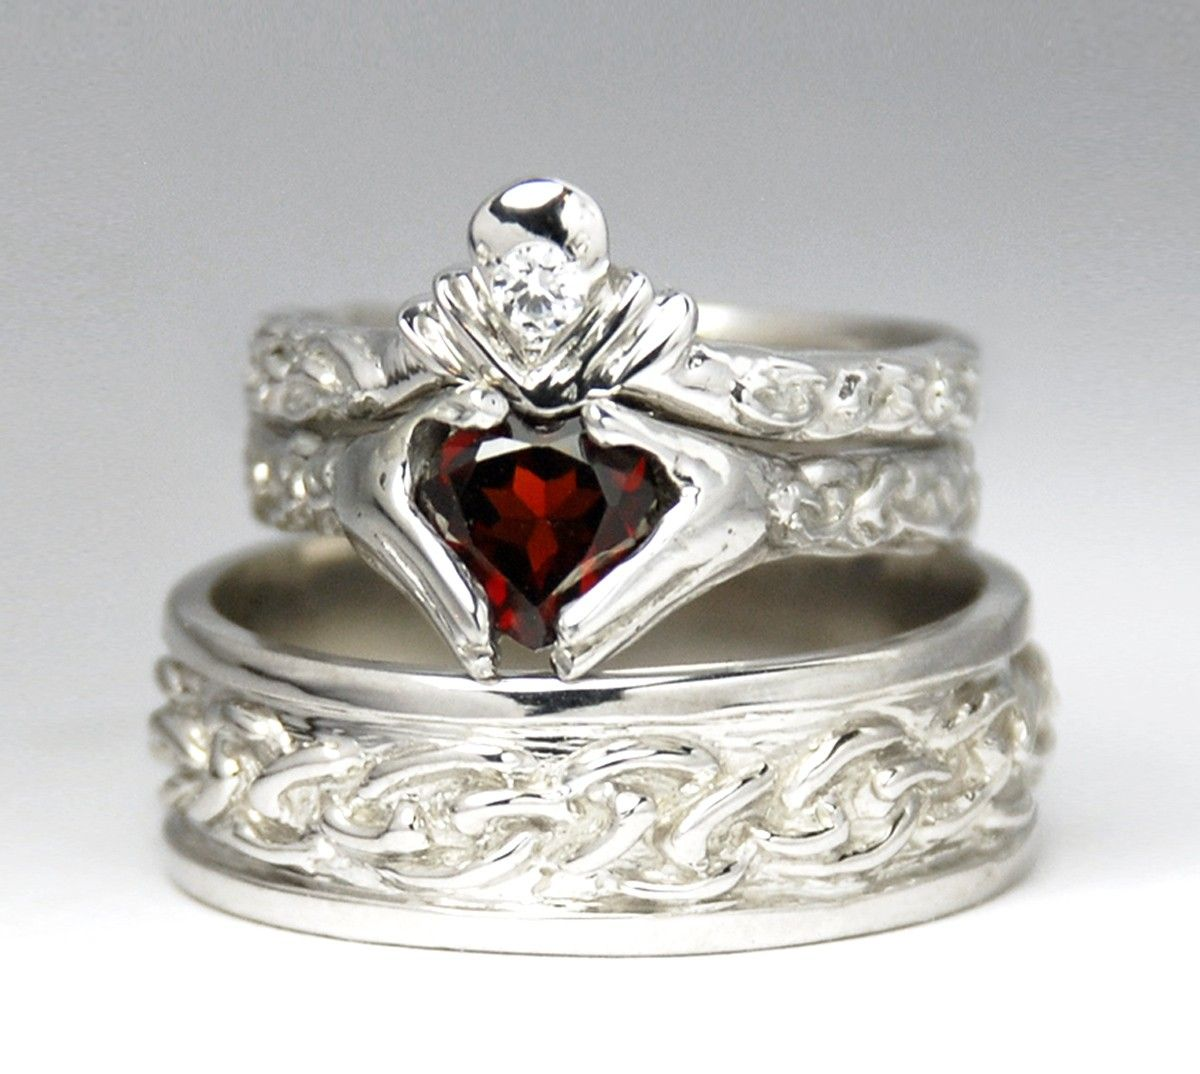 claddagh wedding set new white gold diamond garnet engagement ring mens celtic band rickson - Irish Wedding Ring Sets